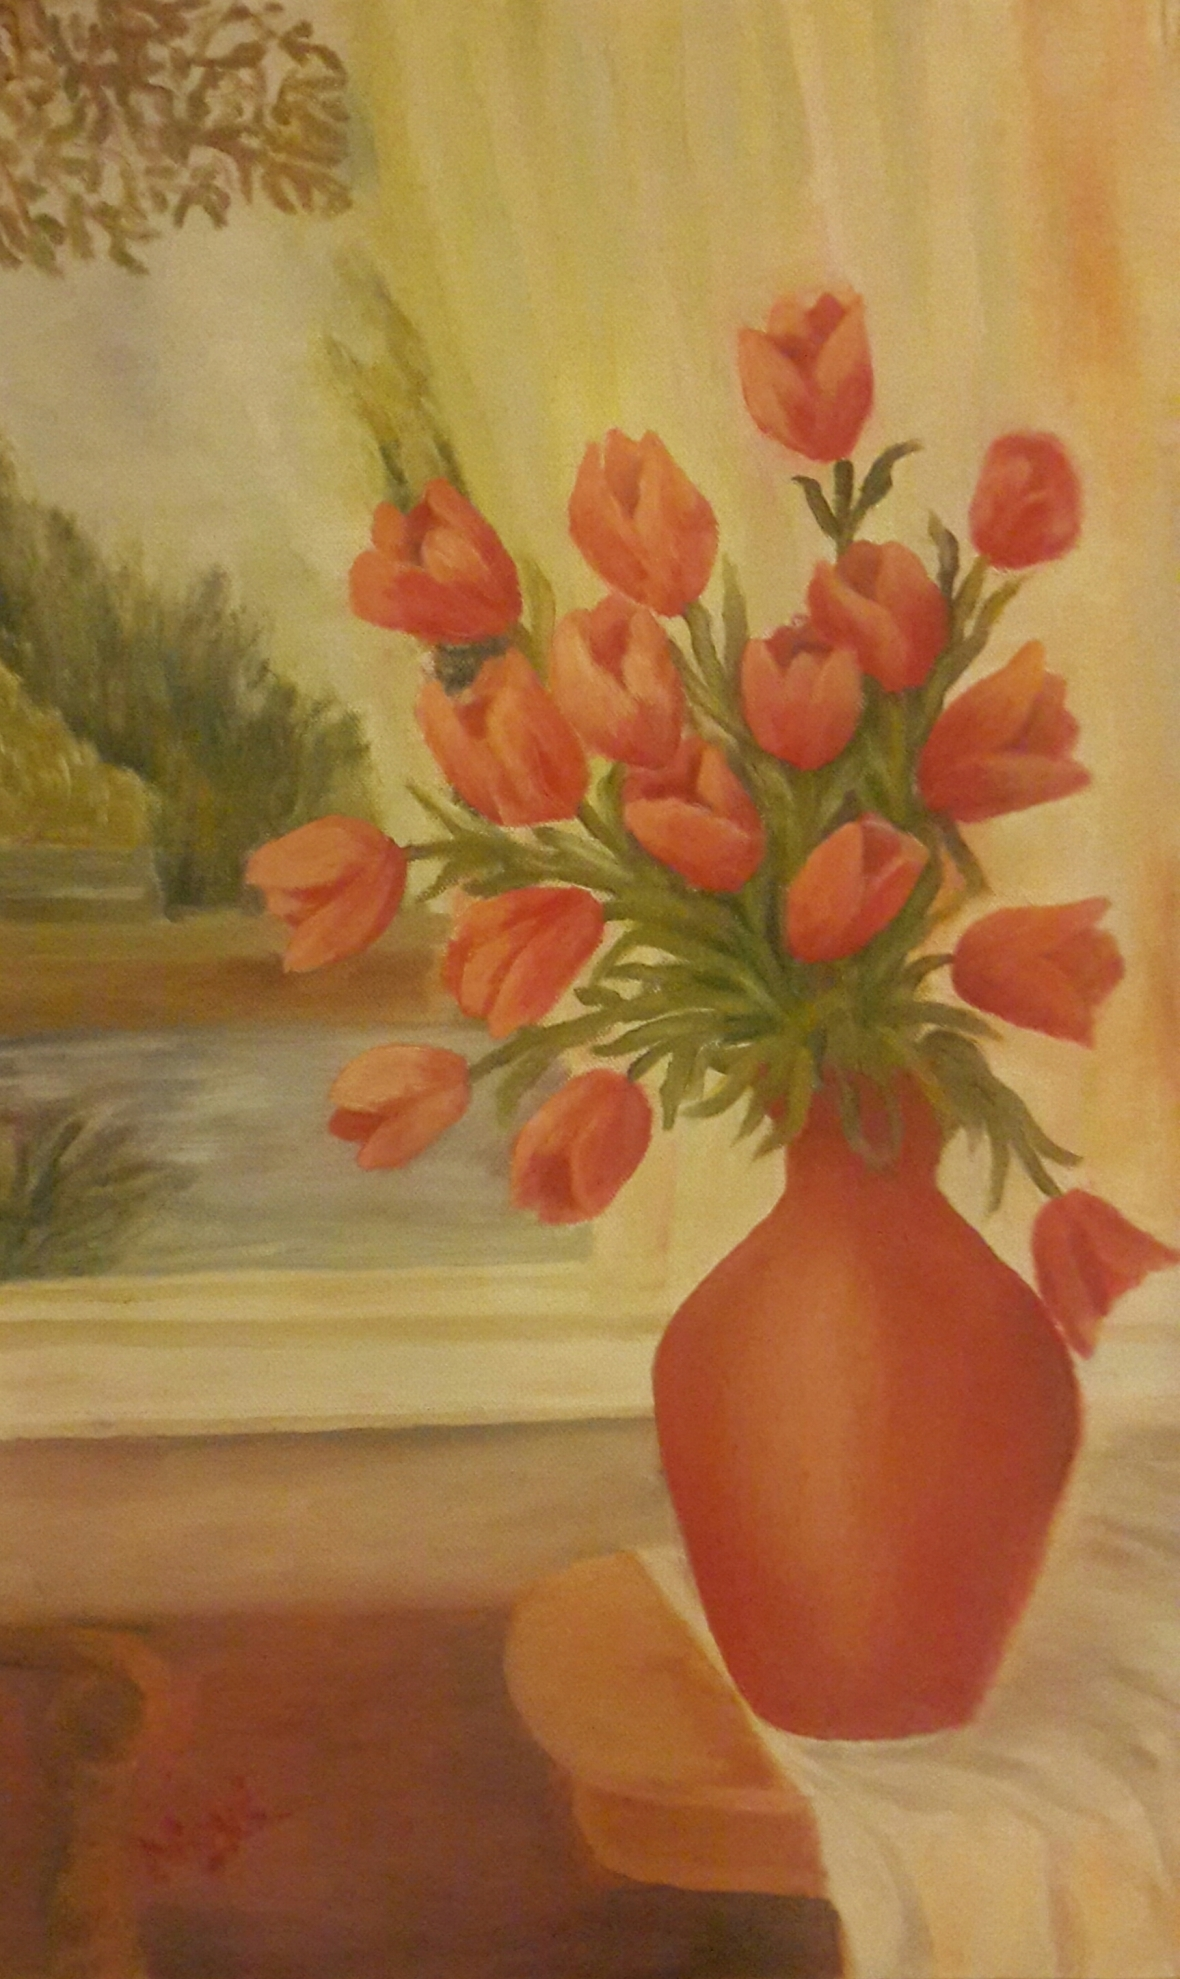 Tulips in a vase red tulips original oil painting by Navdeep Kular